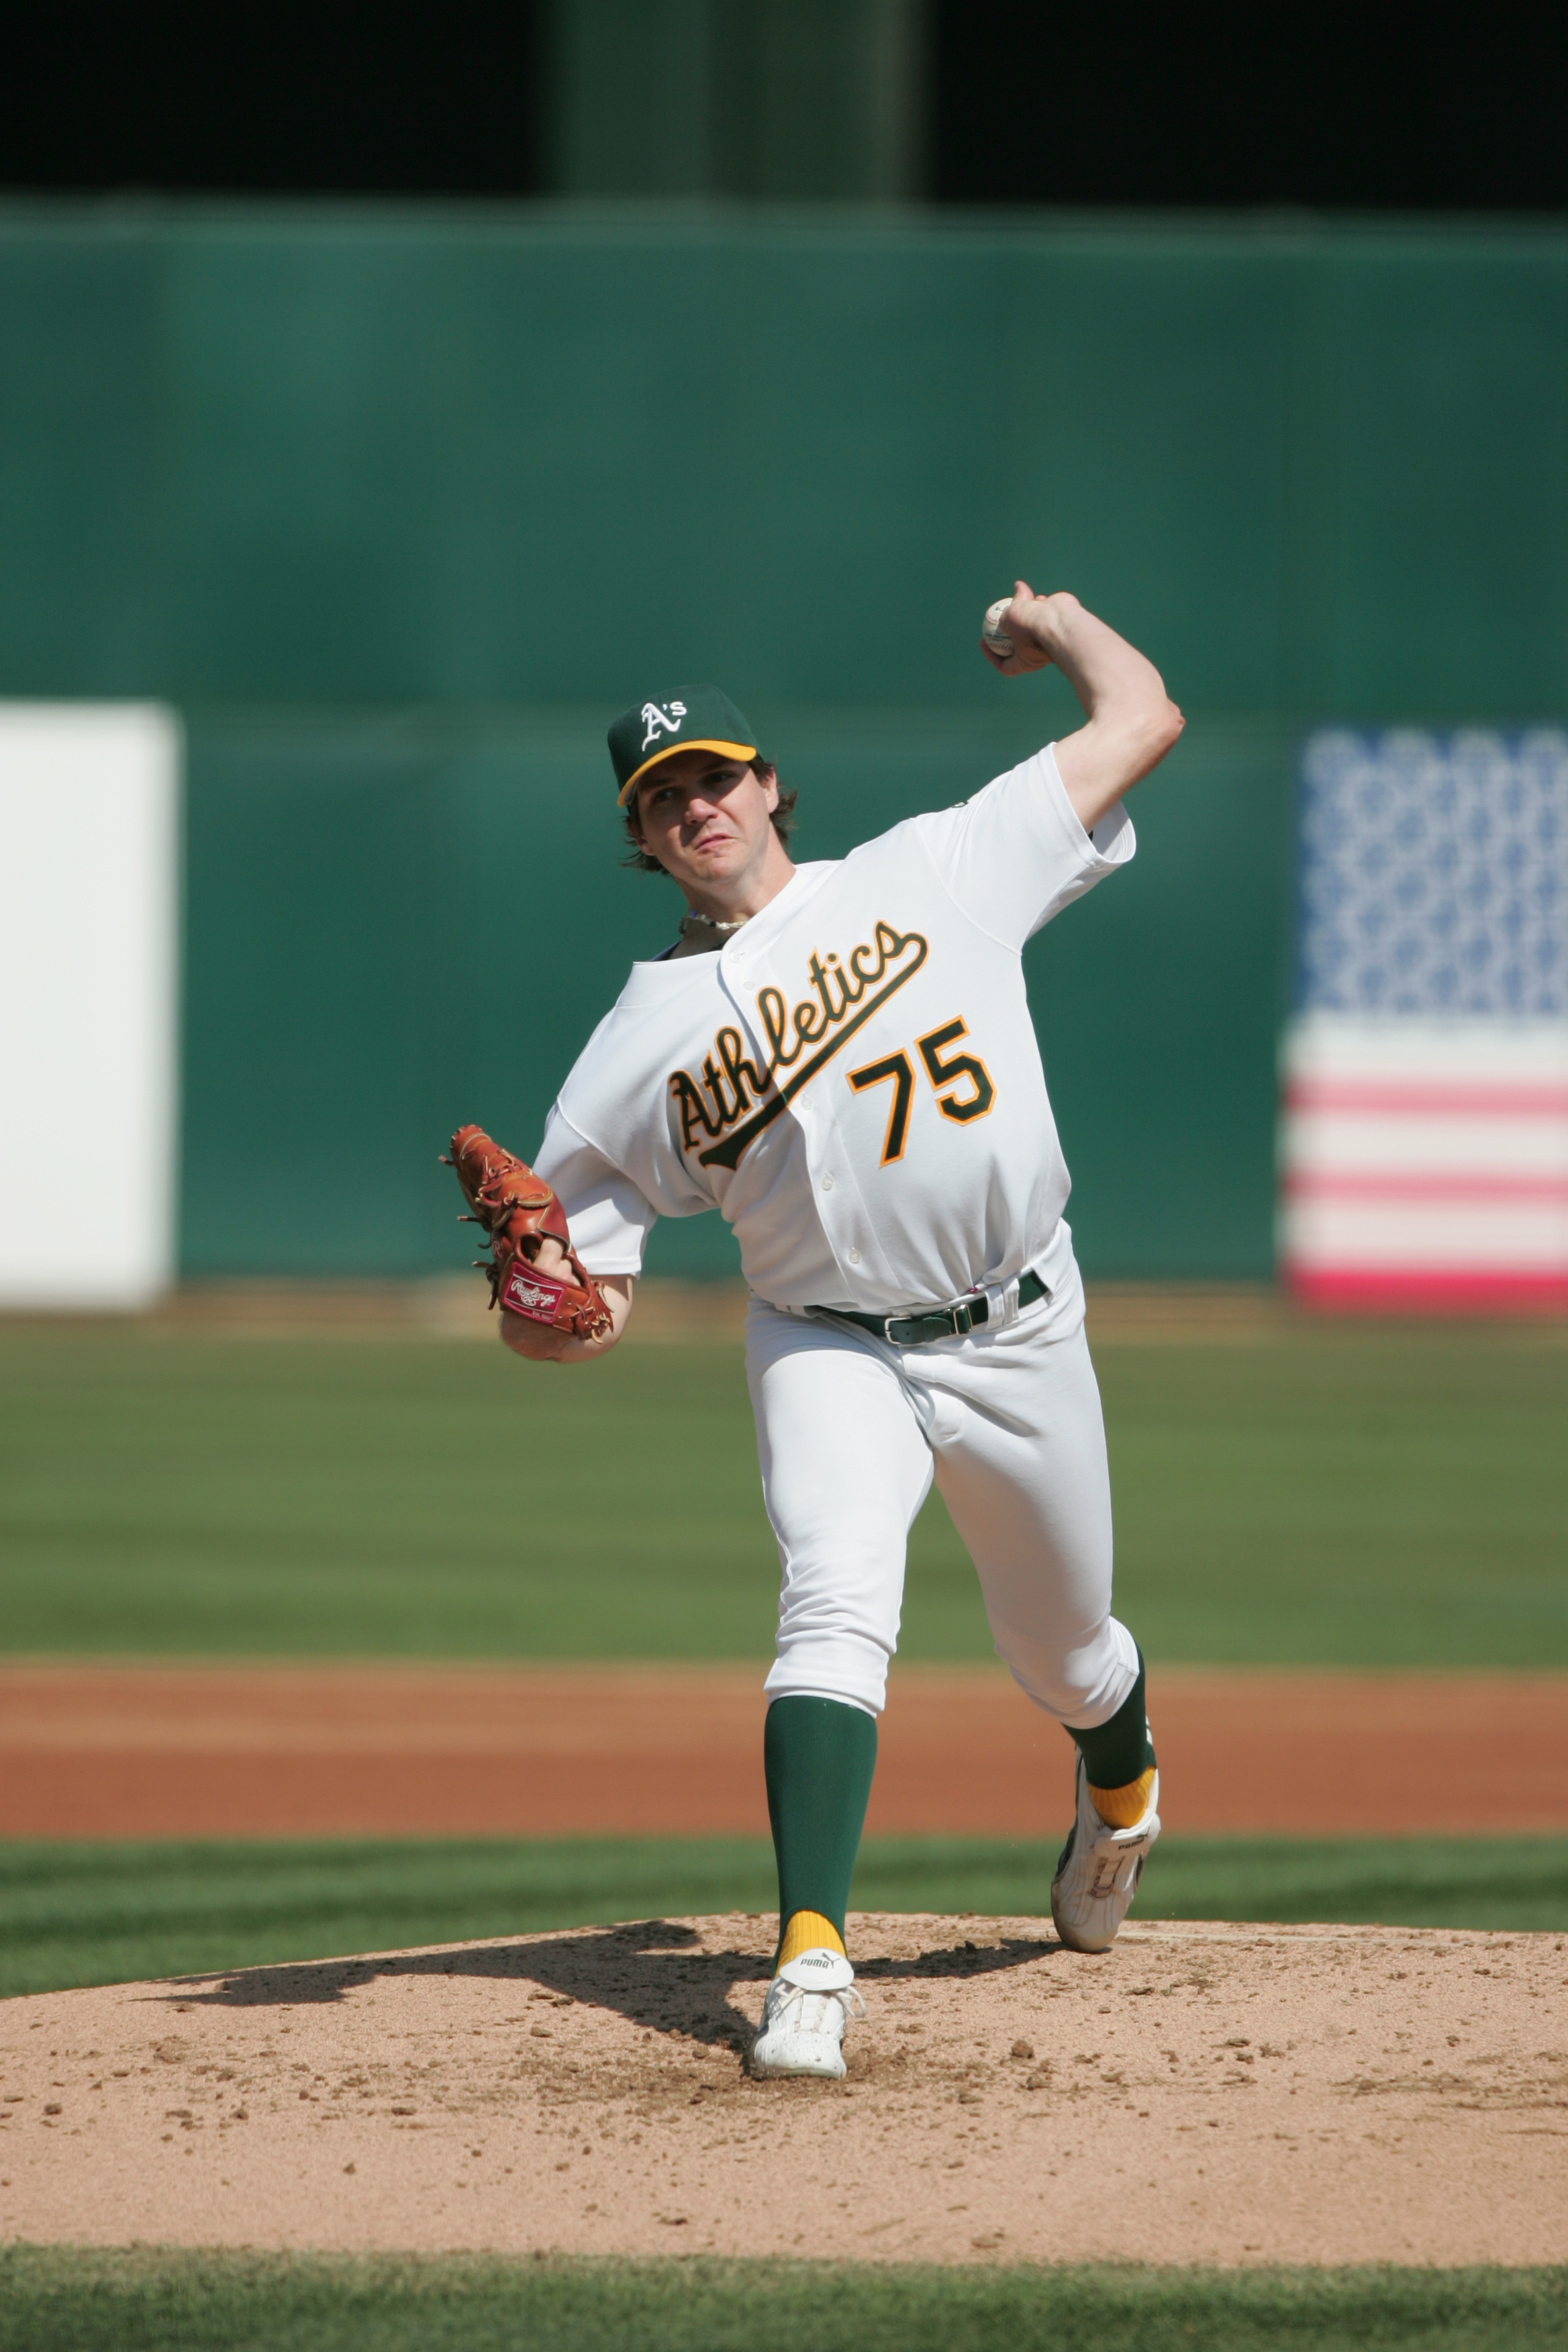 OAKLAND, CA - OCTOBER 2:  Pitcher Barry Zito #75 of the Oakland Athletics delivers a pitch against the Anaheim Angels during a MLB game at the Network Associates Coliseum on October 2, 2004 in Oakland, California. The Angeles won 5-4.  (Photo by Jed Jacob